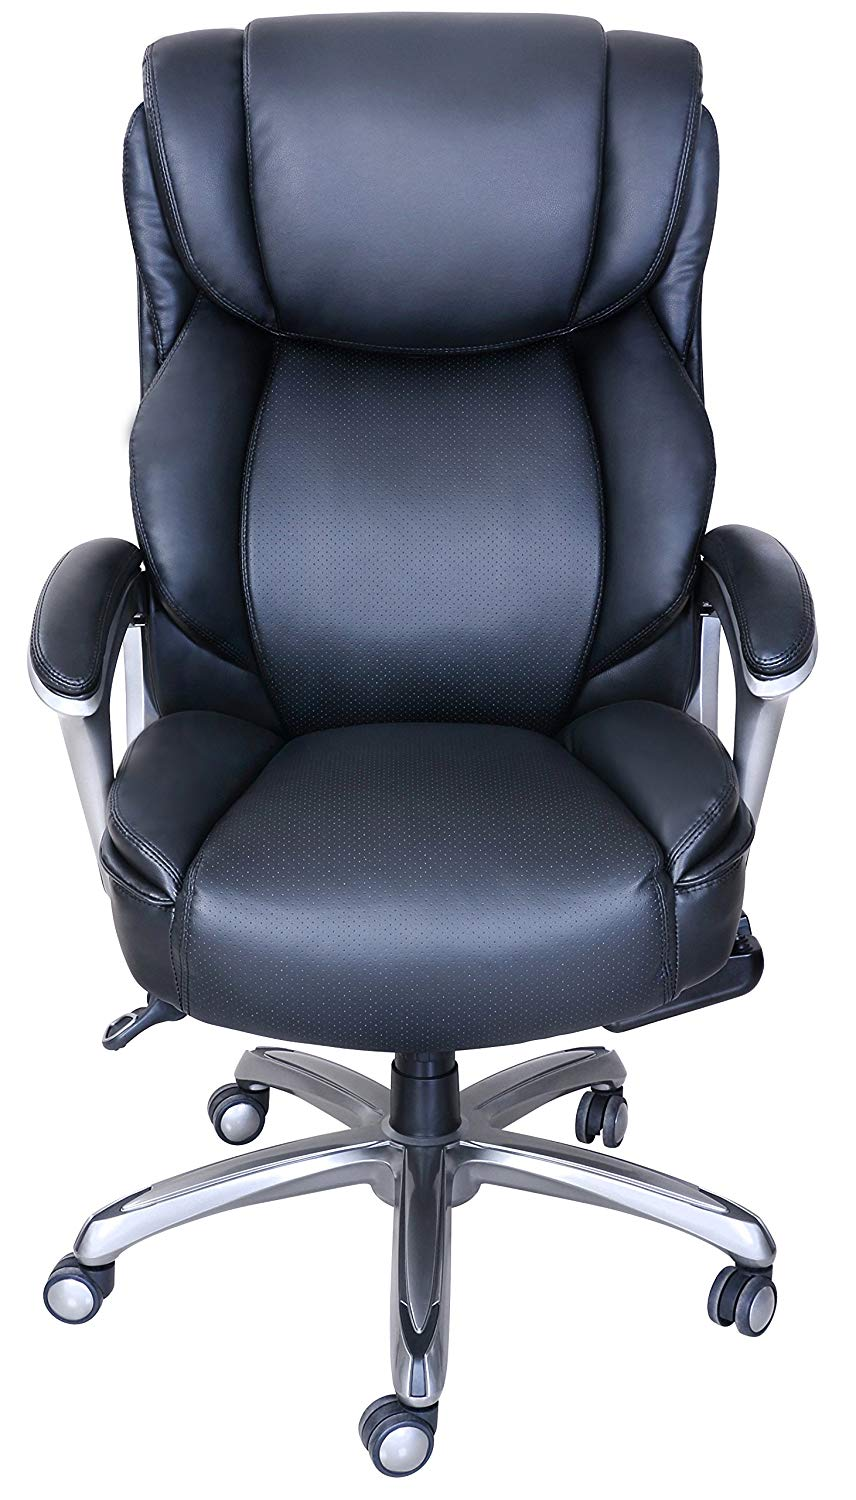 Amazing Top 3 Heated Office Chairs And A Bonus Reviews 2019 Creativecarmelina Interior Chair Design Creativecarmelinacom